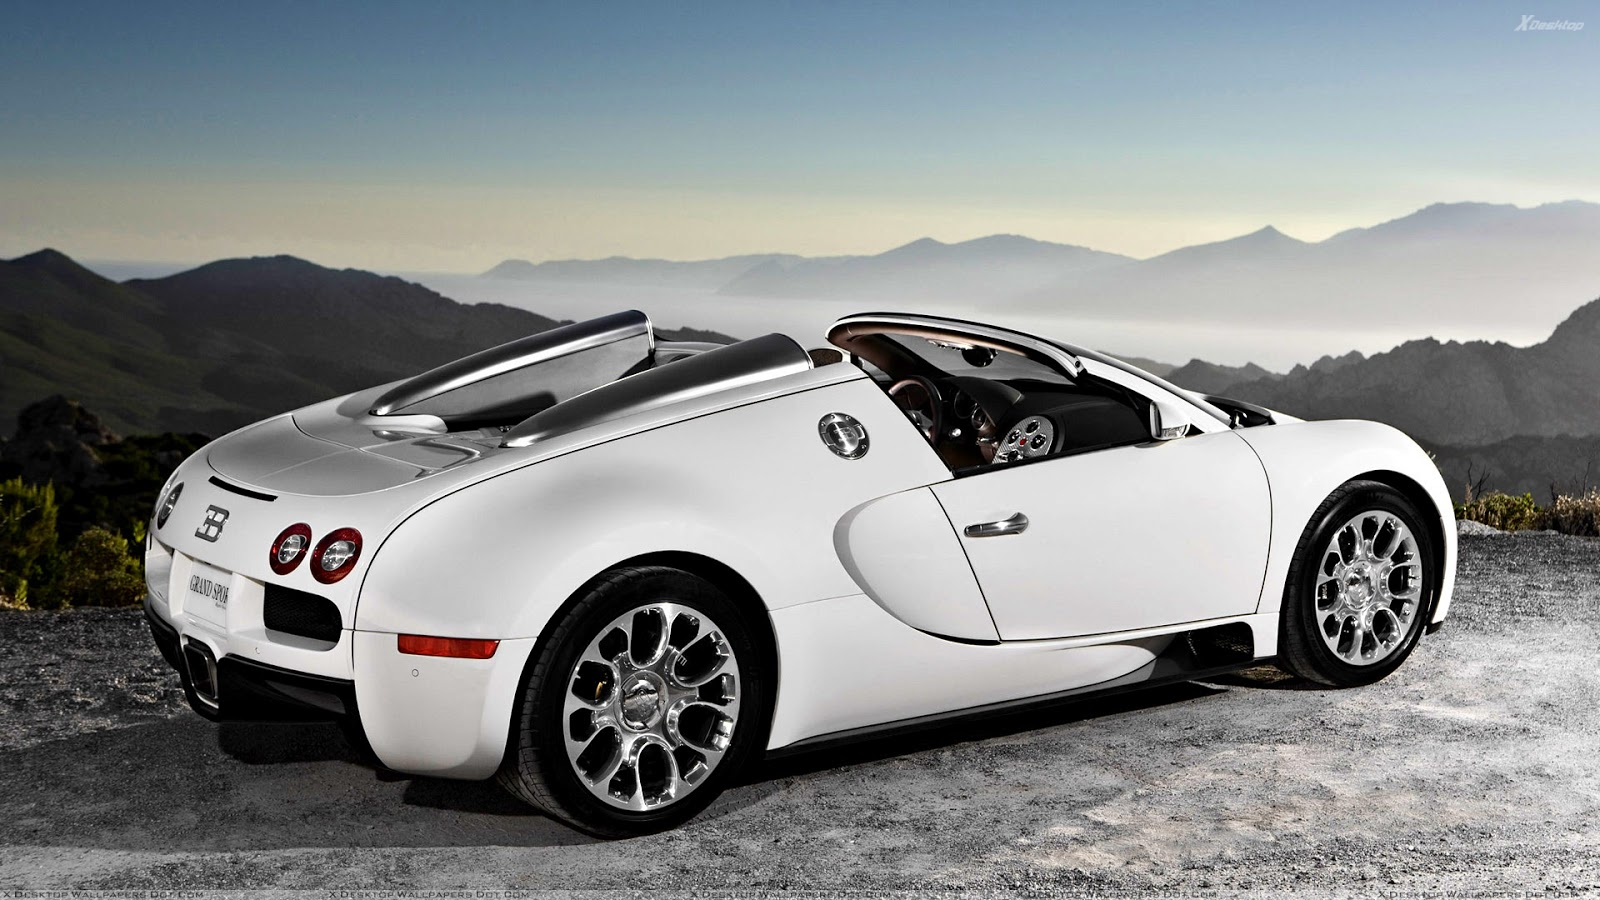 Side+Back+Pose+Of+Bugatti+Veyron+16.4+Grand+Sport+In+White wiring diagram 4 way switch 3 on wiring diagram 4 way switch